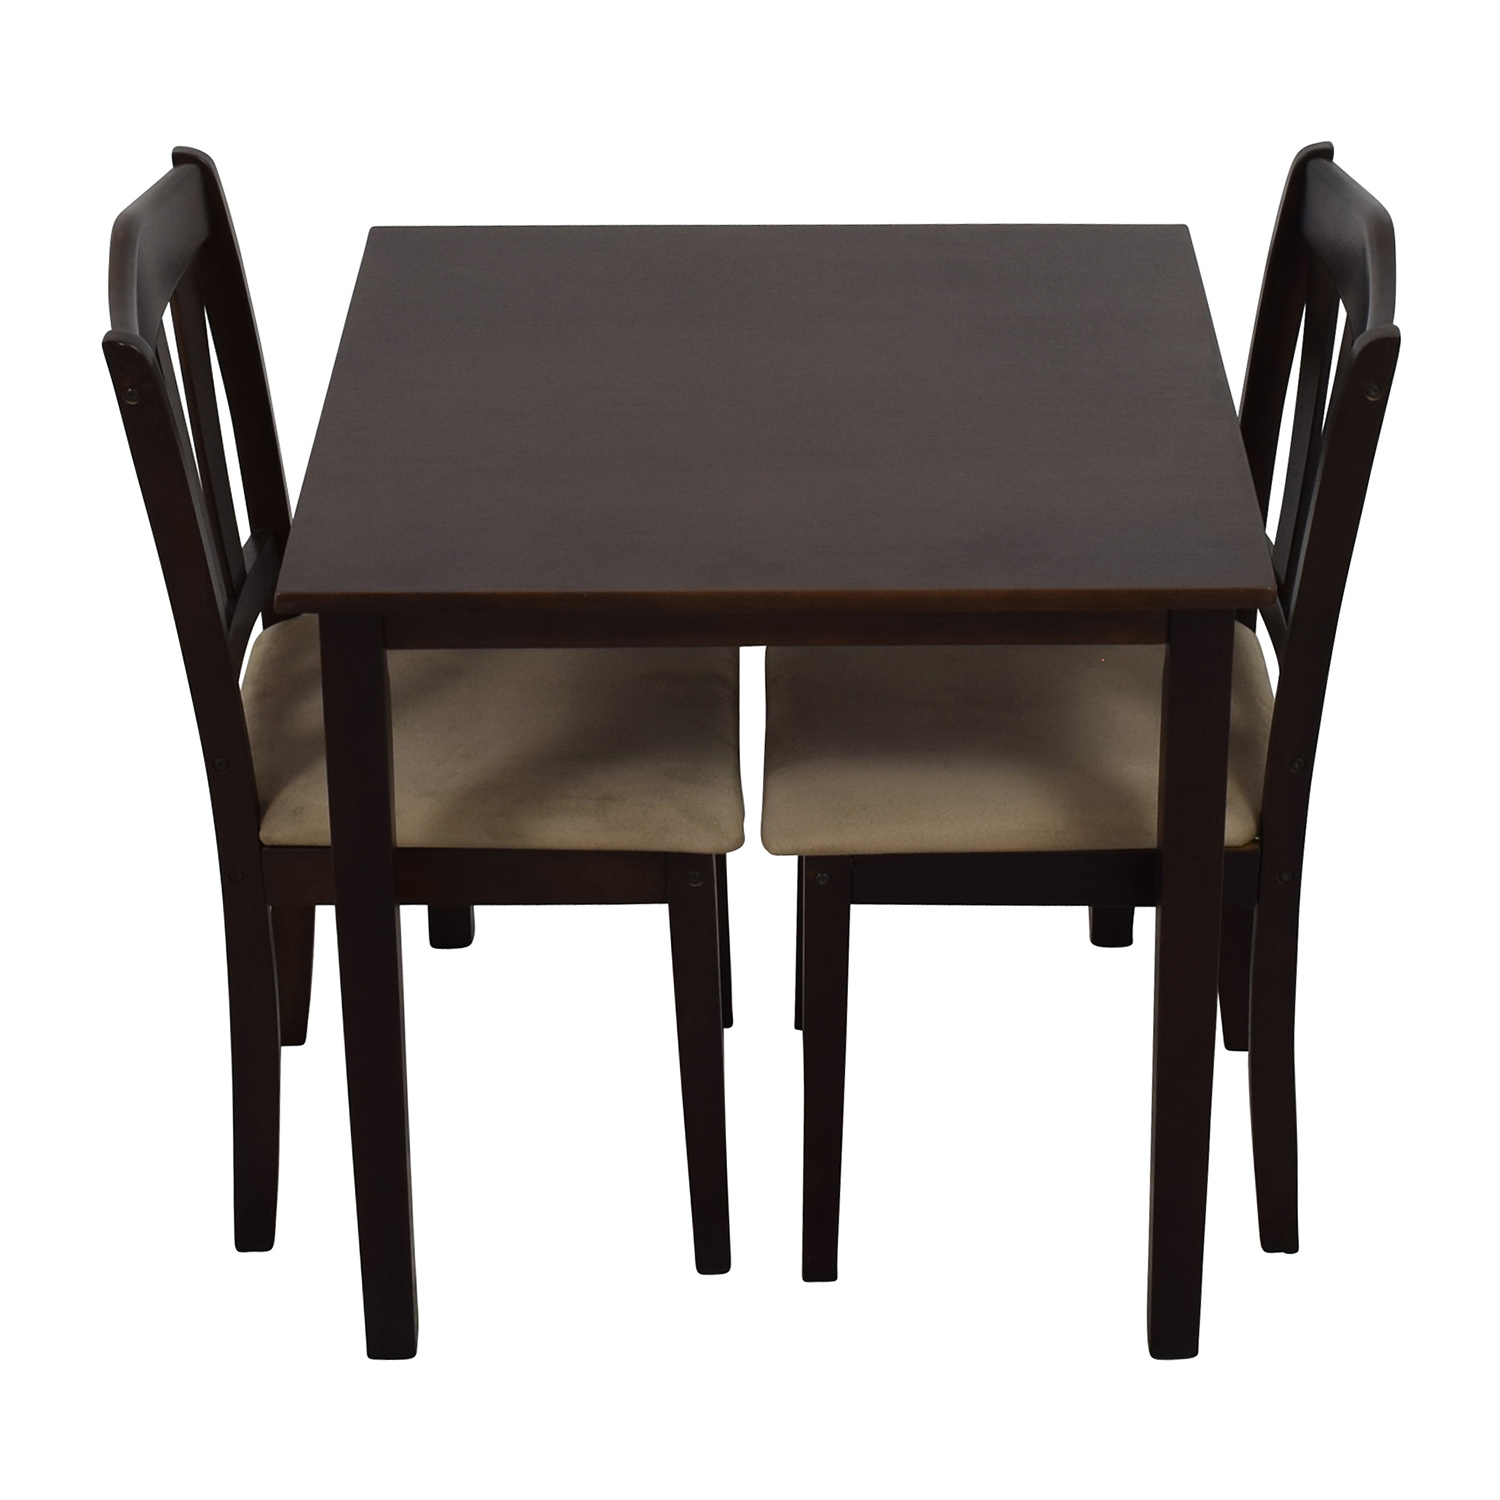 Wood Dining Table and Beige Upholstered Chairs price